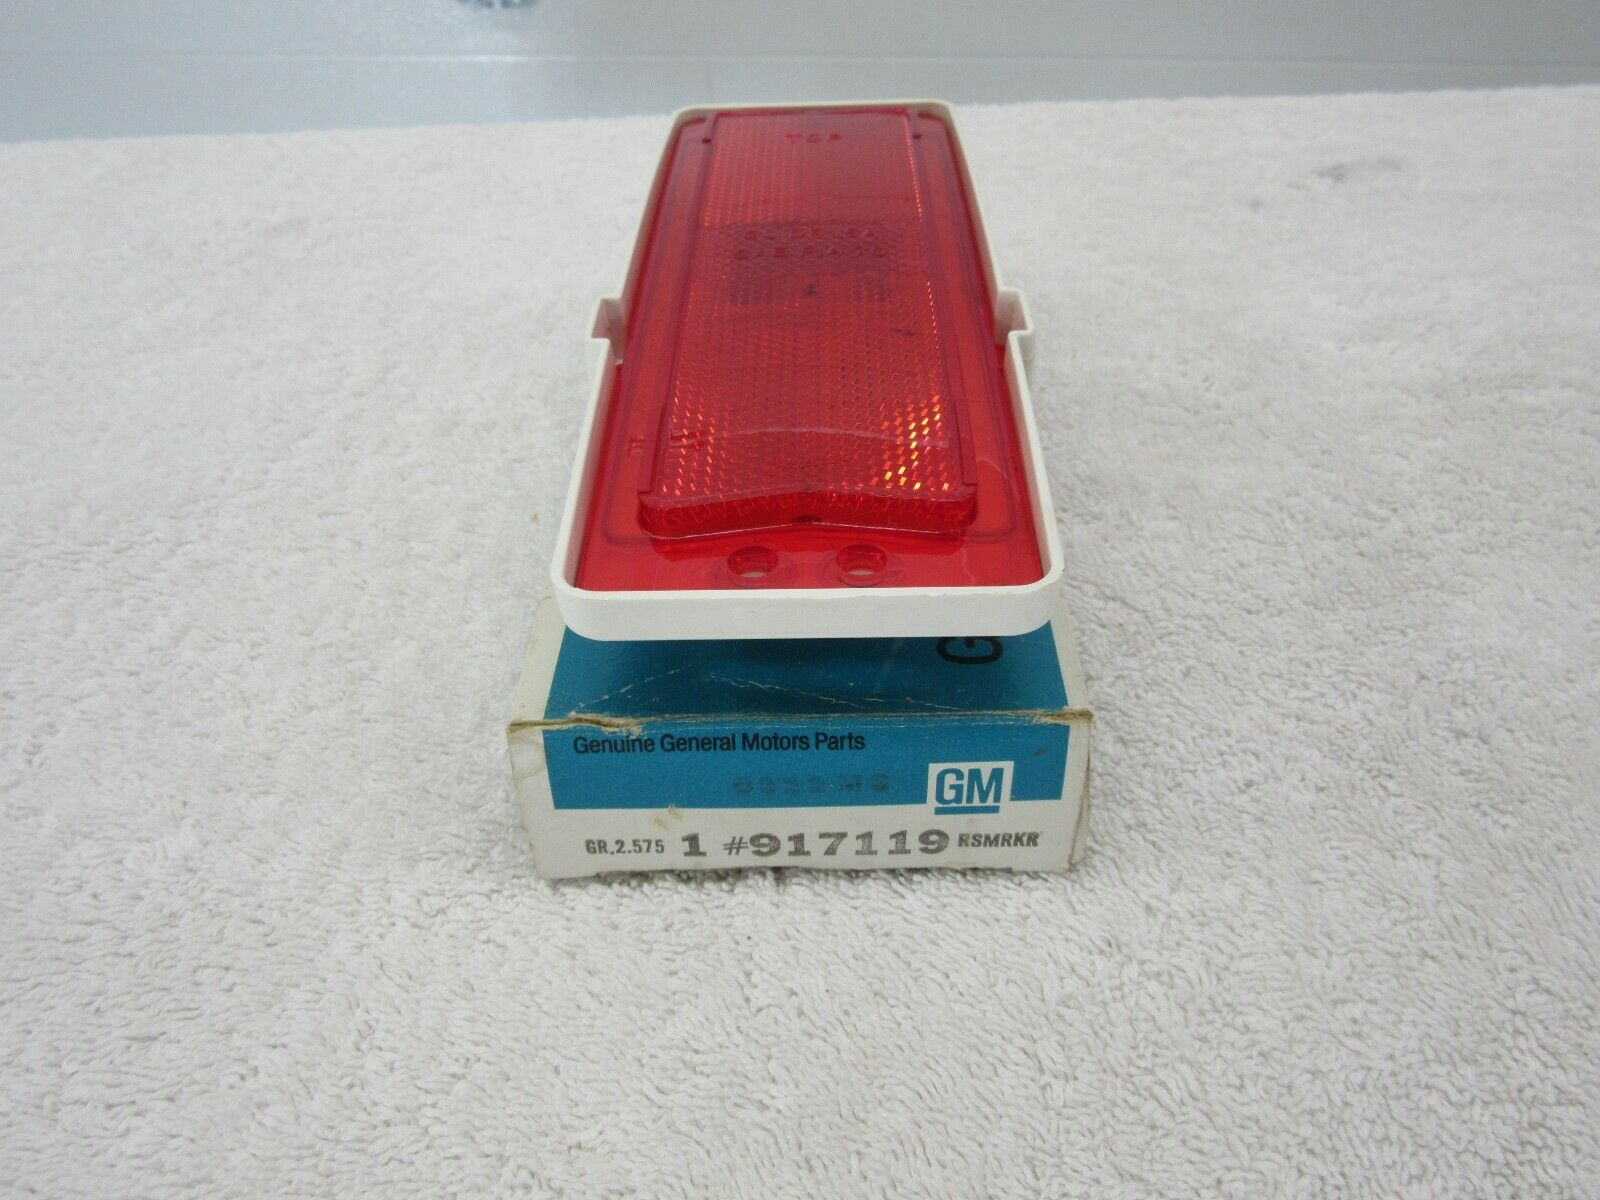 NOS 1970 Impala Caprice Rear Quarter Side Marker Lamp Assembly GM 917119  dp